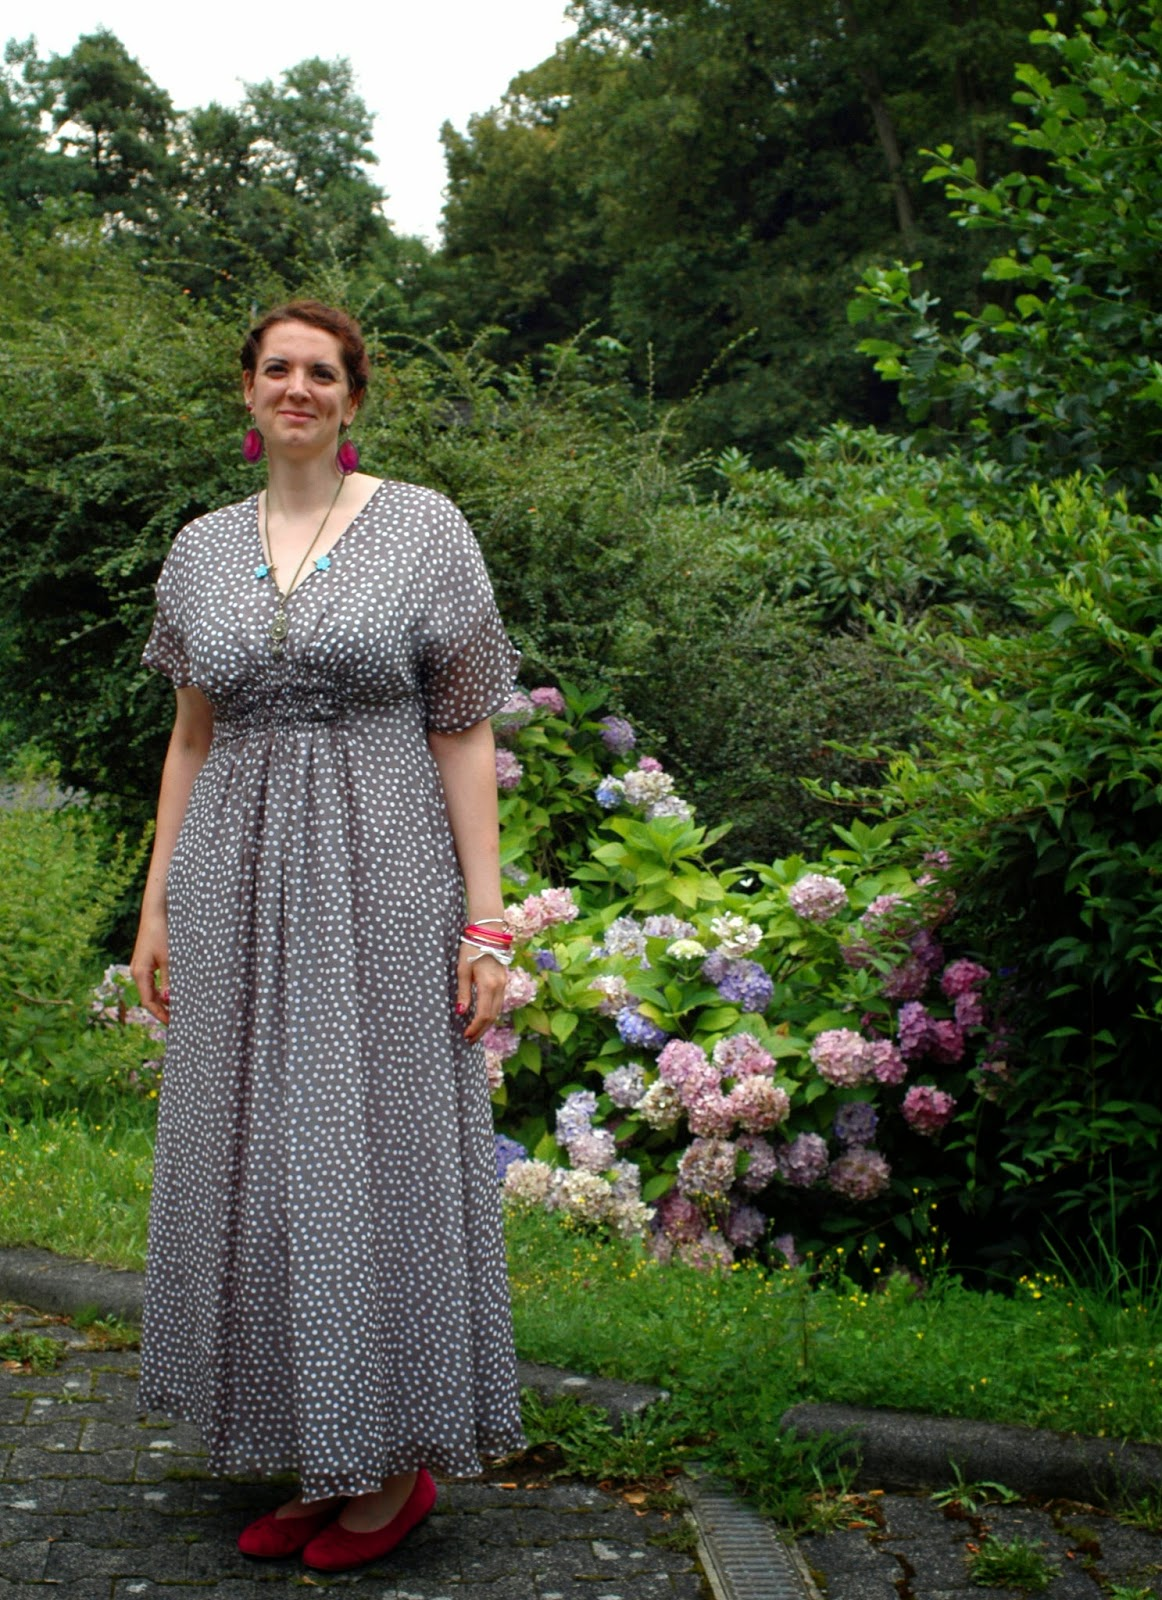 http://morvenshandmades.blogspot.de/2014/07/polkadot-wedding-guest-dress-in-maxi.html